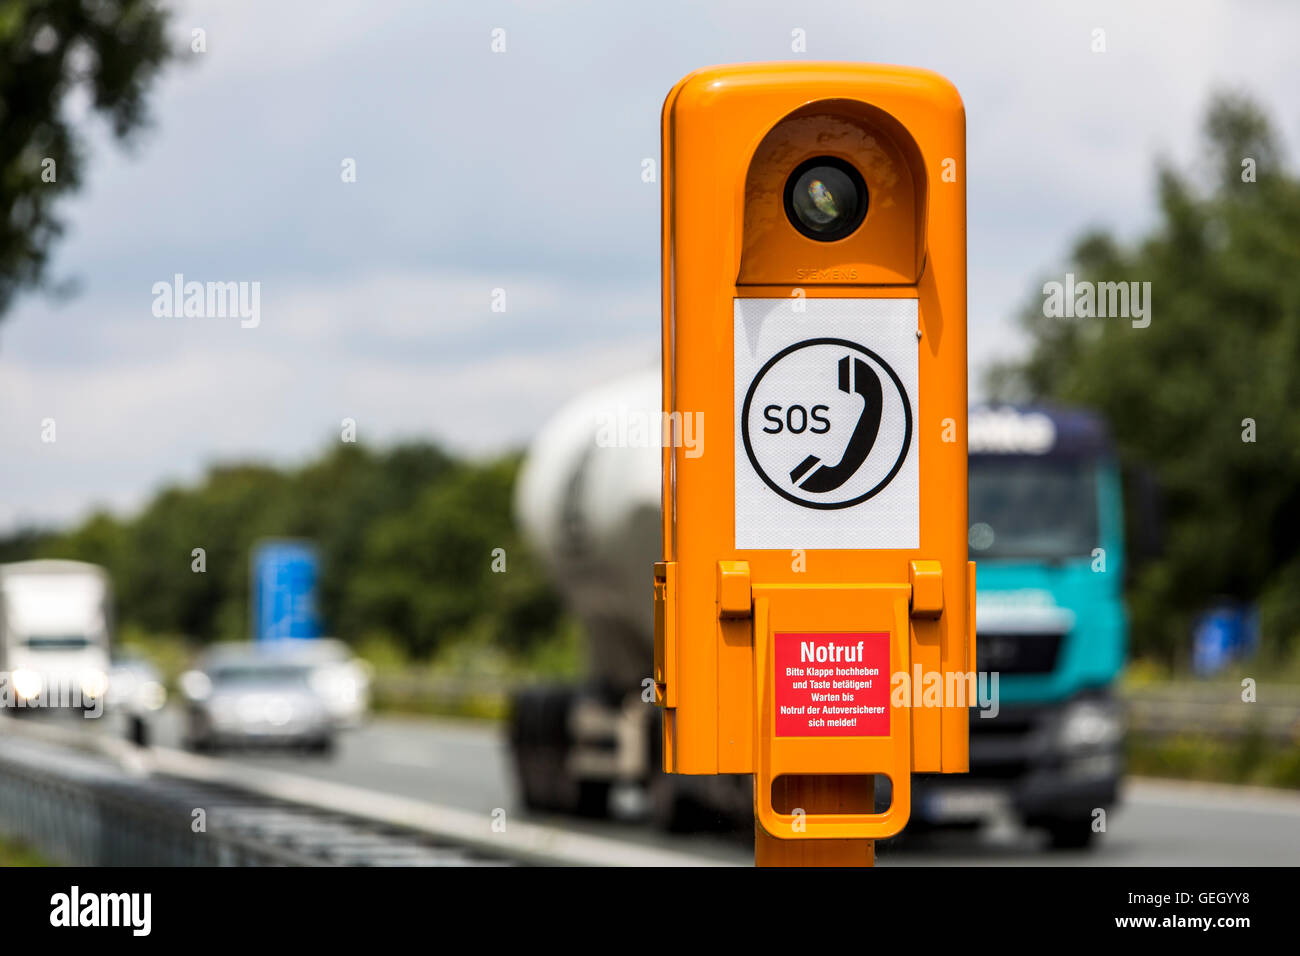 SOS telephone, roadside emergency telephone, call box, along the German Autobahn, motorway, direct access to emergency - Stock Image